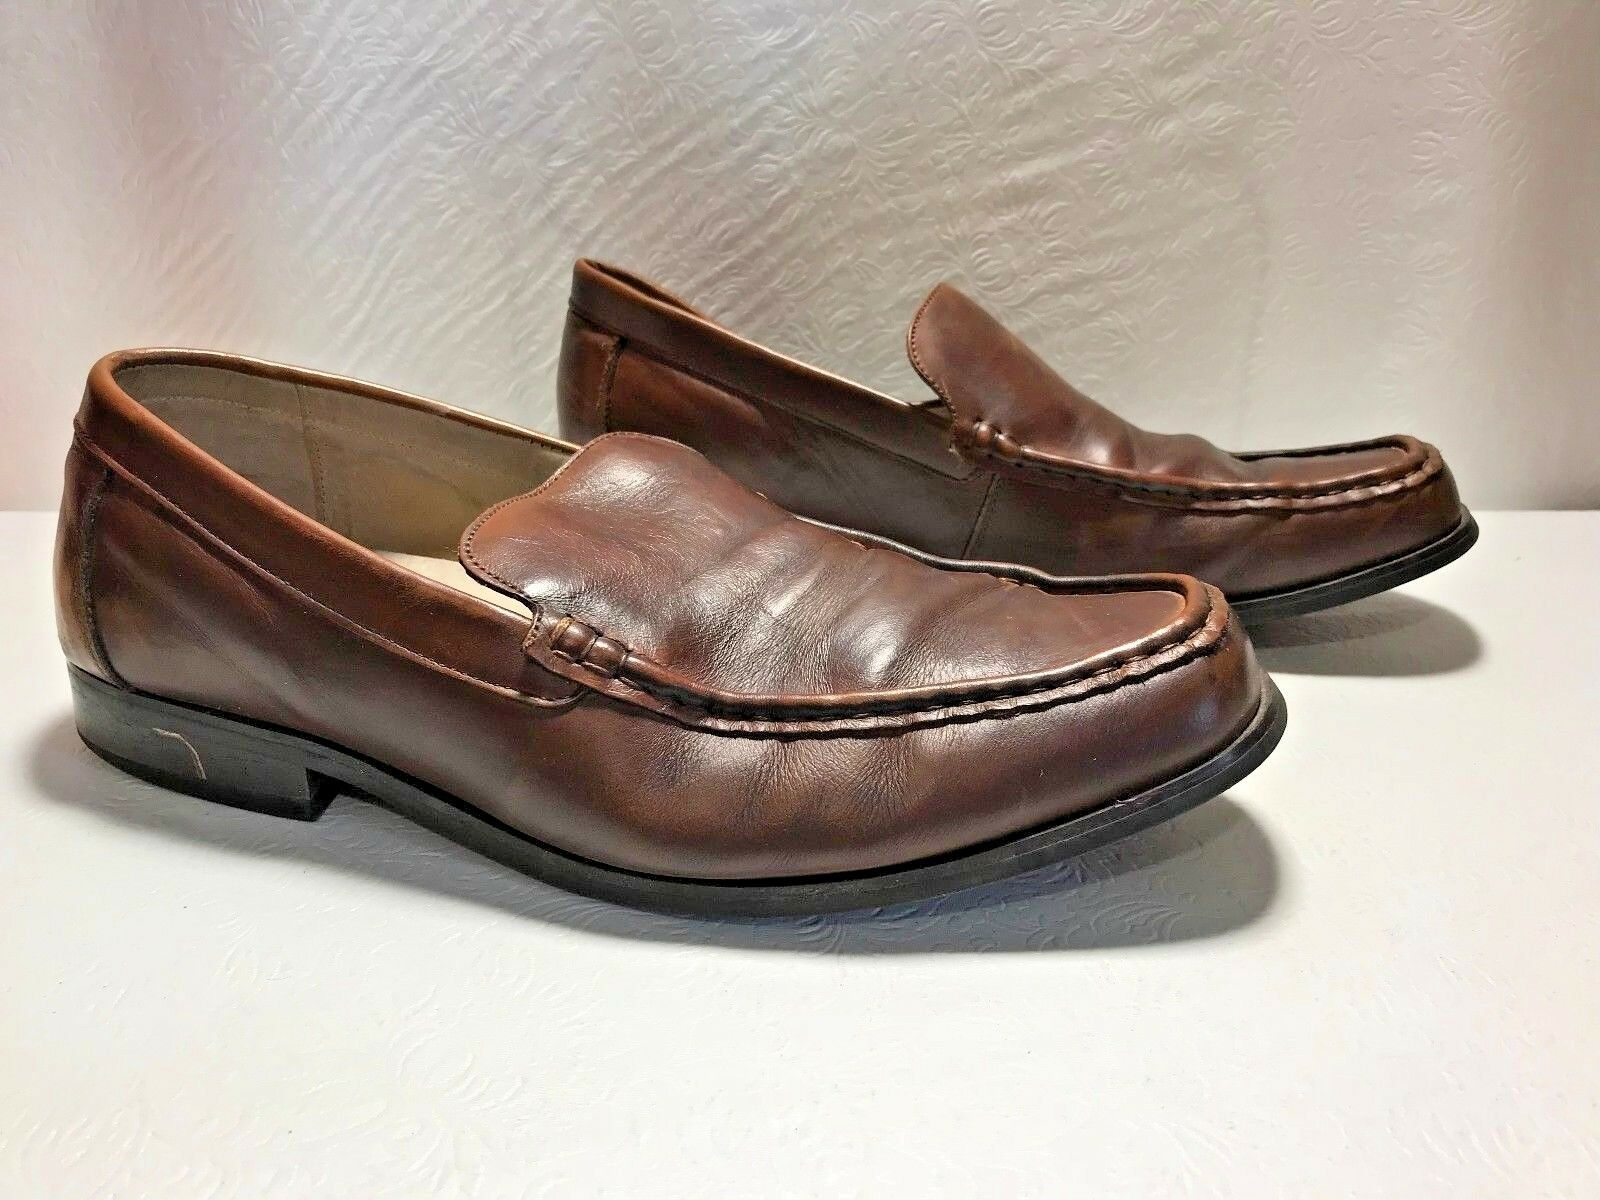 G. H. BASS & CO. Robert Men's Brown Leather Slip on Loafer Size 13M